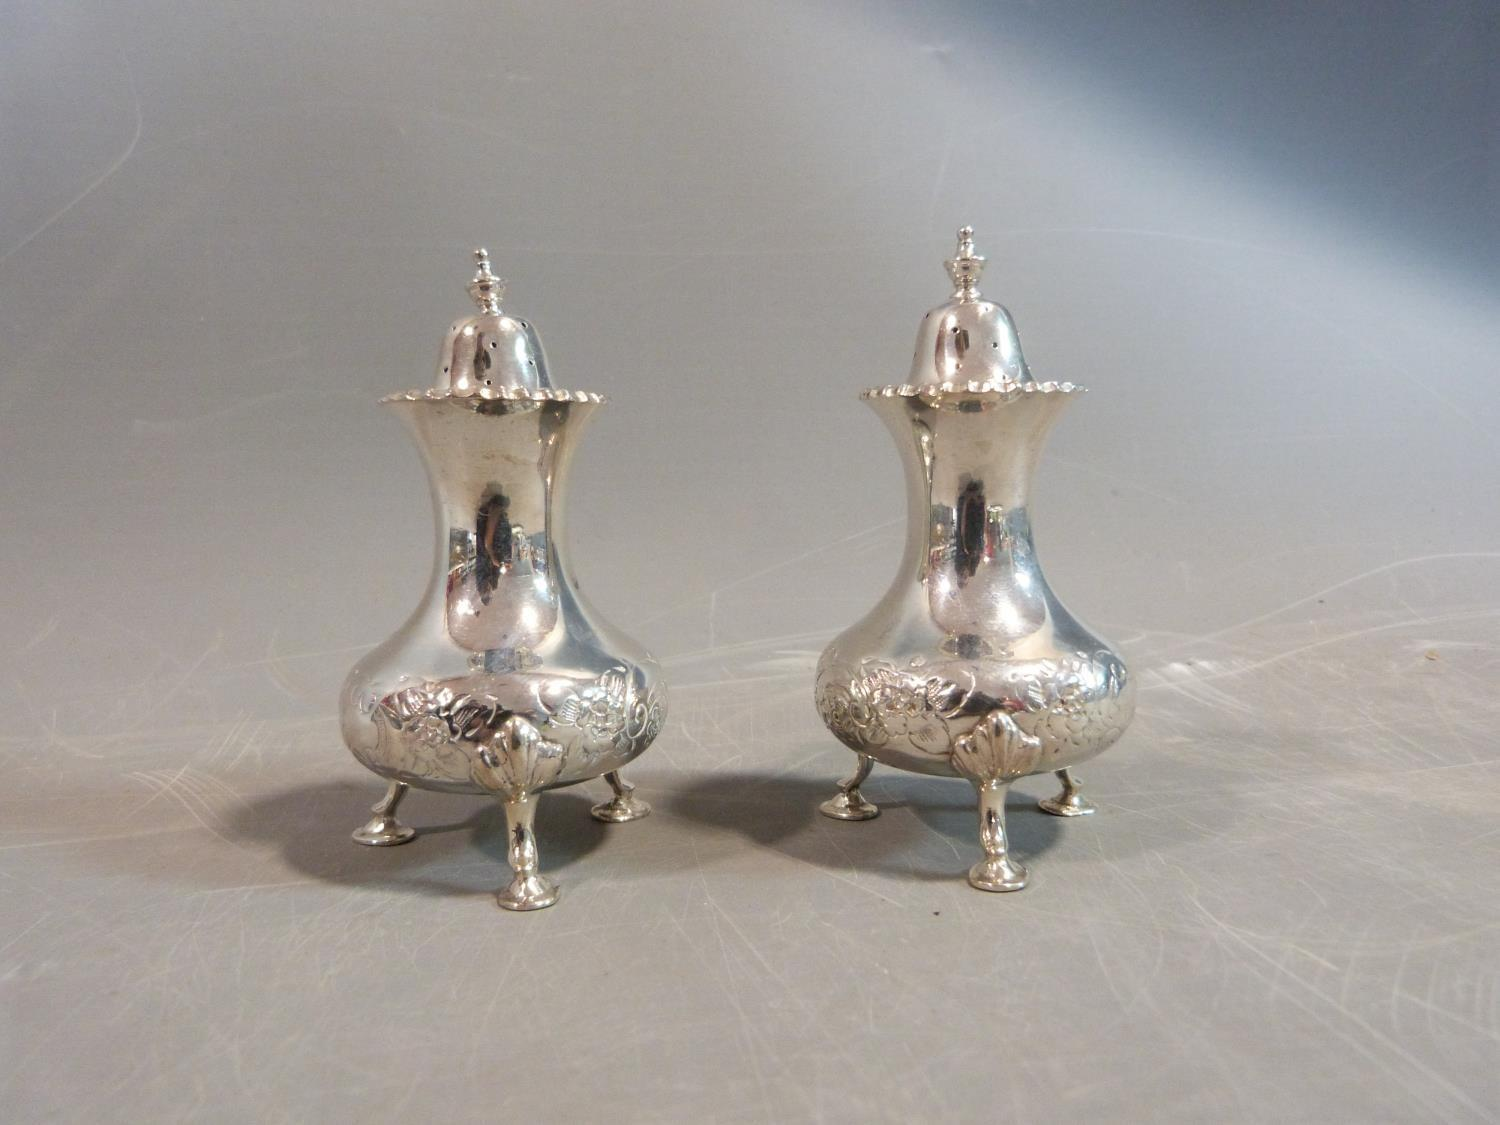 A silver floral cruet set. Hallmarked: CSG & Co. for Charles S Green & Co Ltd, Birmingham, 1954. Not - Image 2 of 11